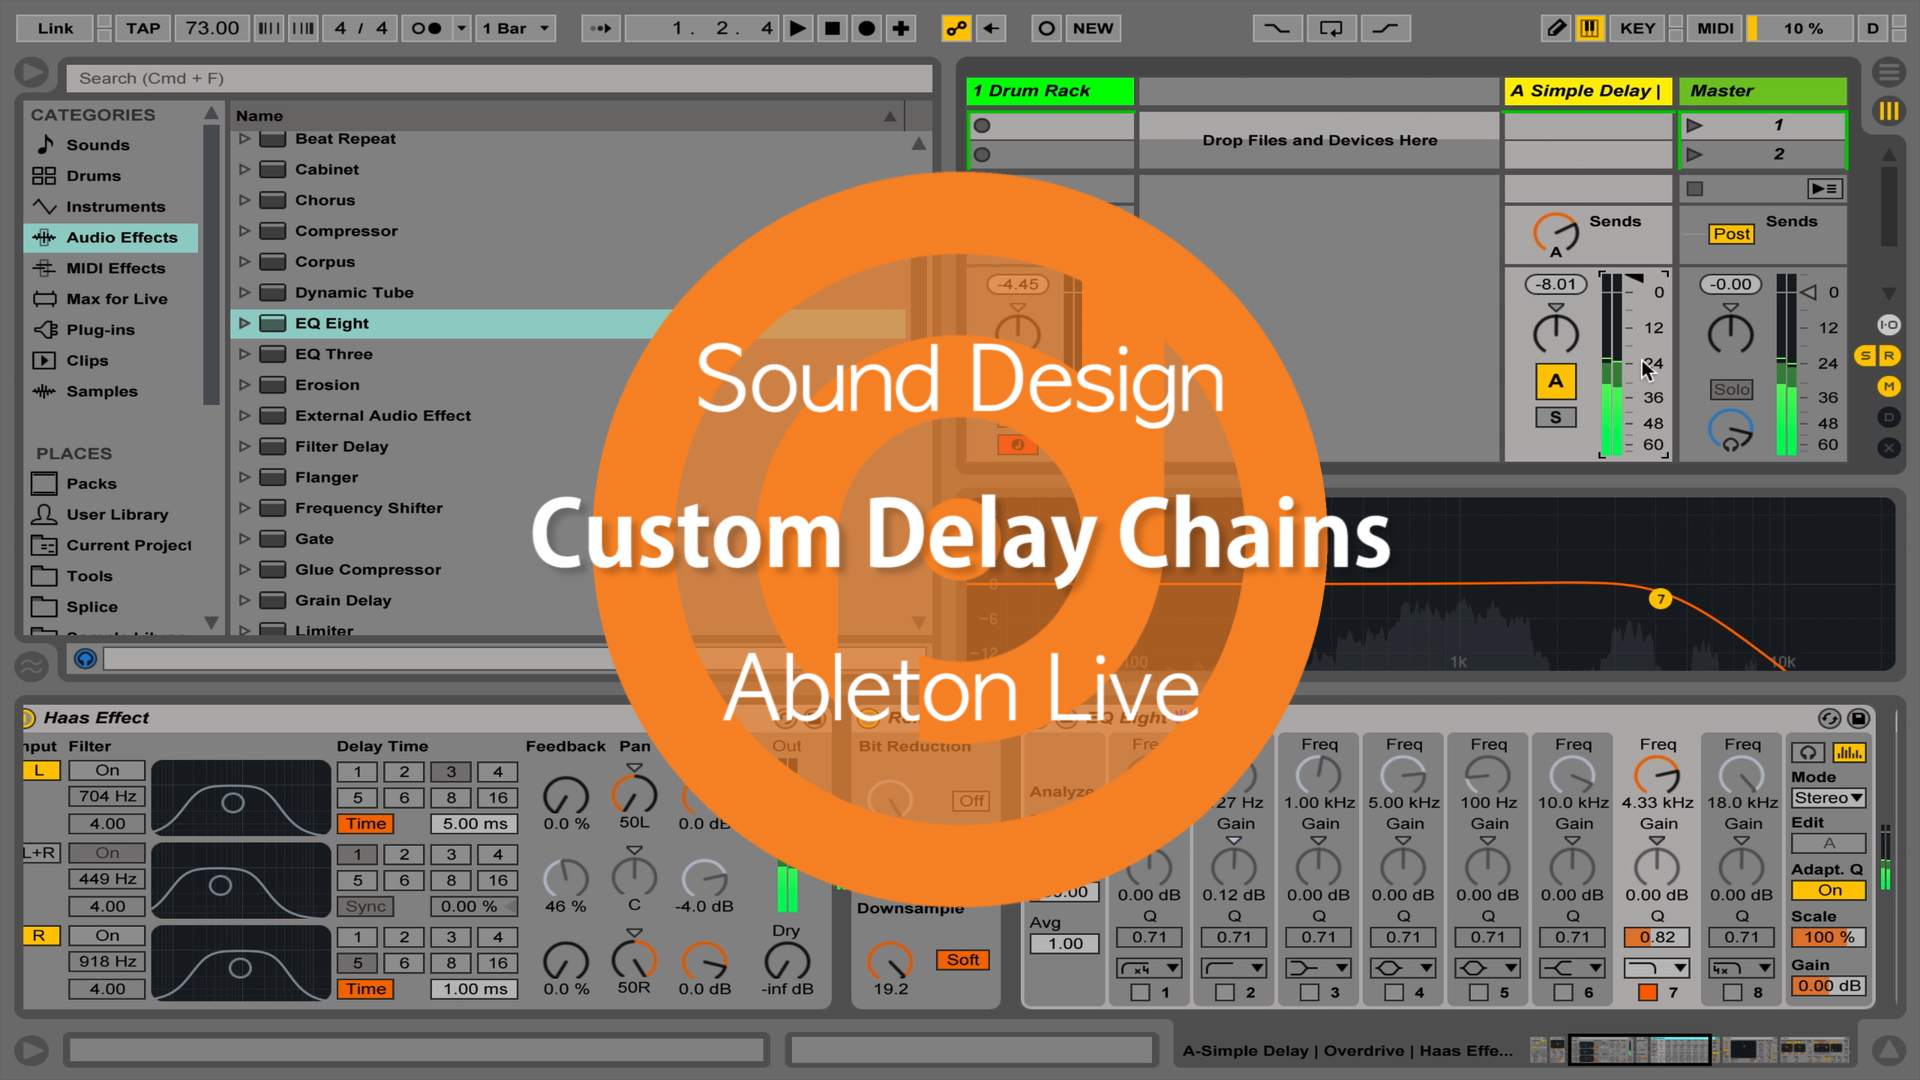 Custom Delay Chains in Ableton